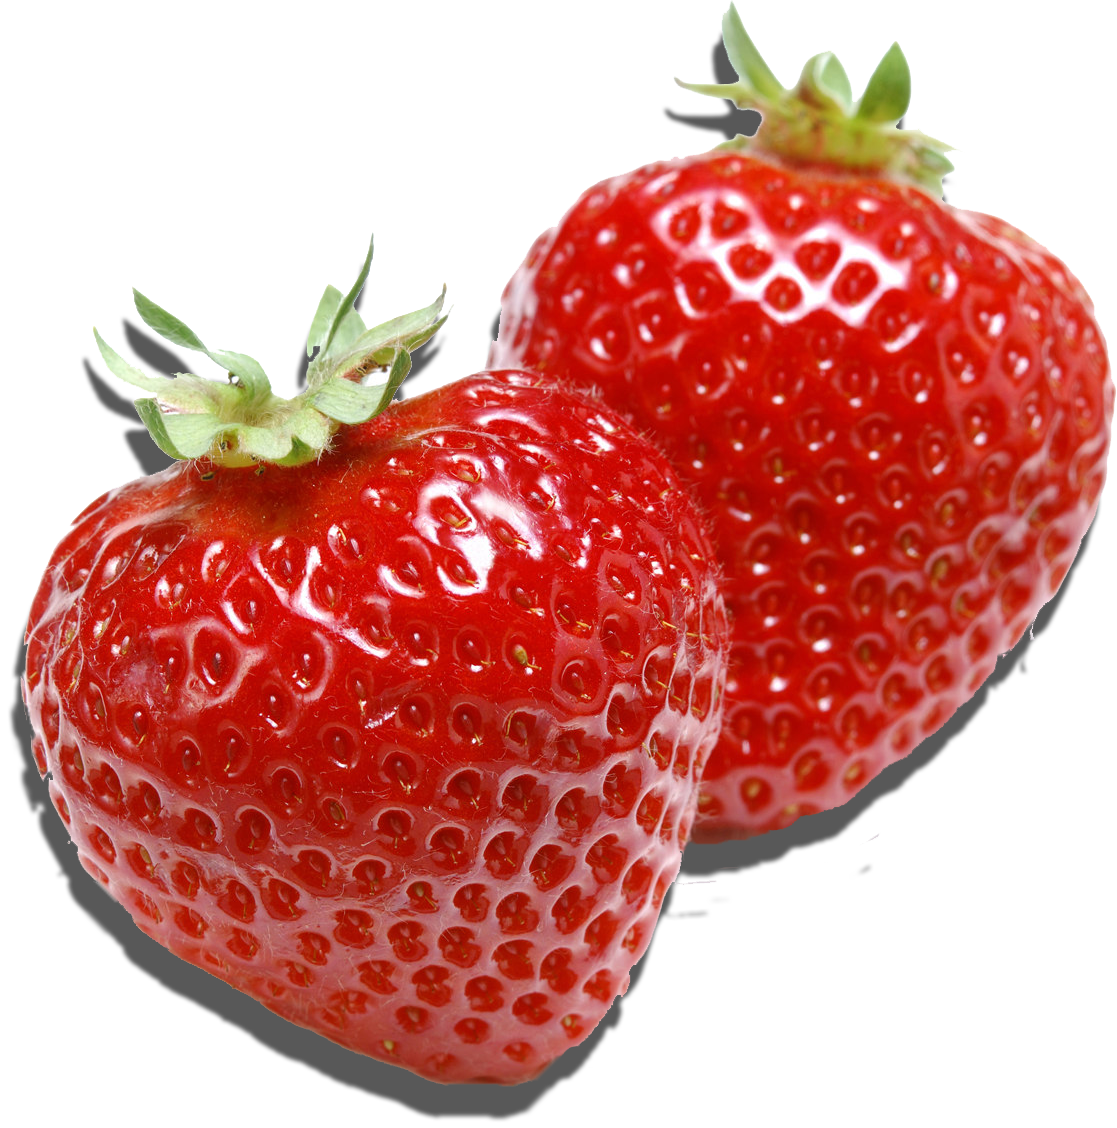 Cheesecake transparent cartoon strawberry. Png images free download